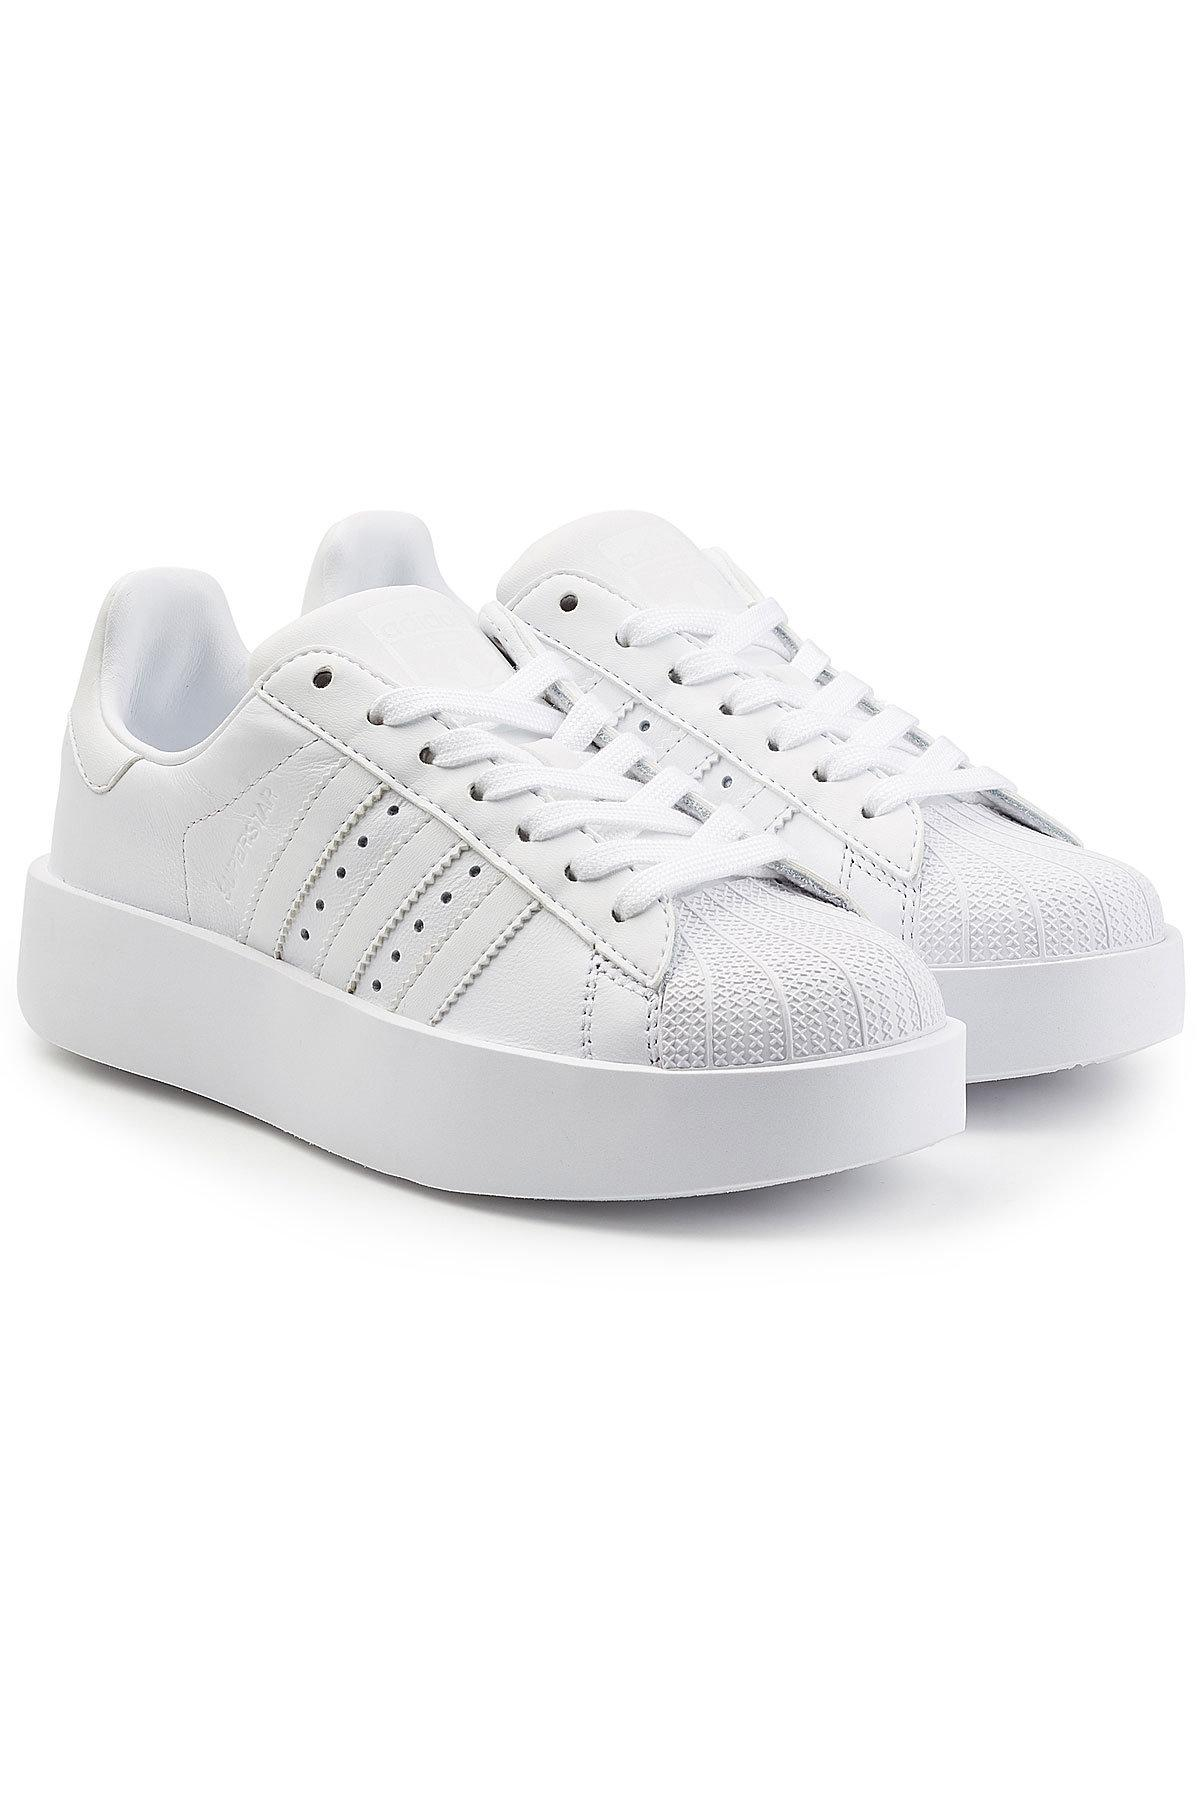 Adidas Originals Superstar Platform Leather Sneakers In